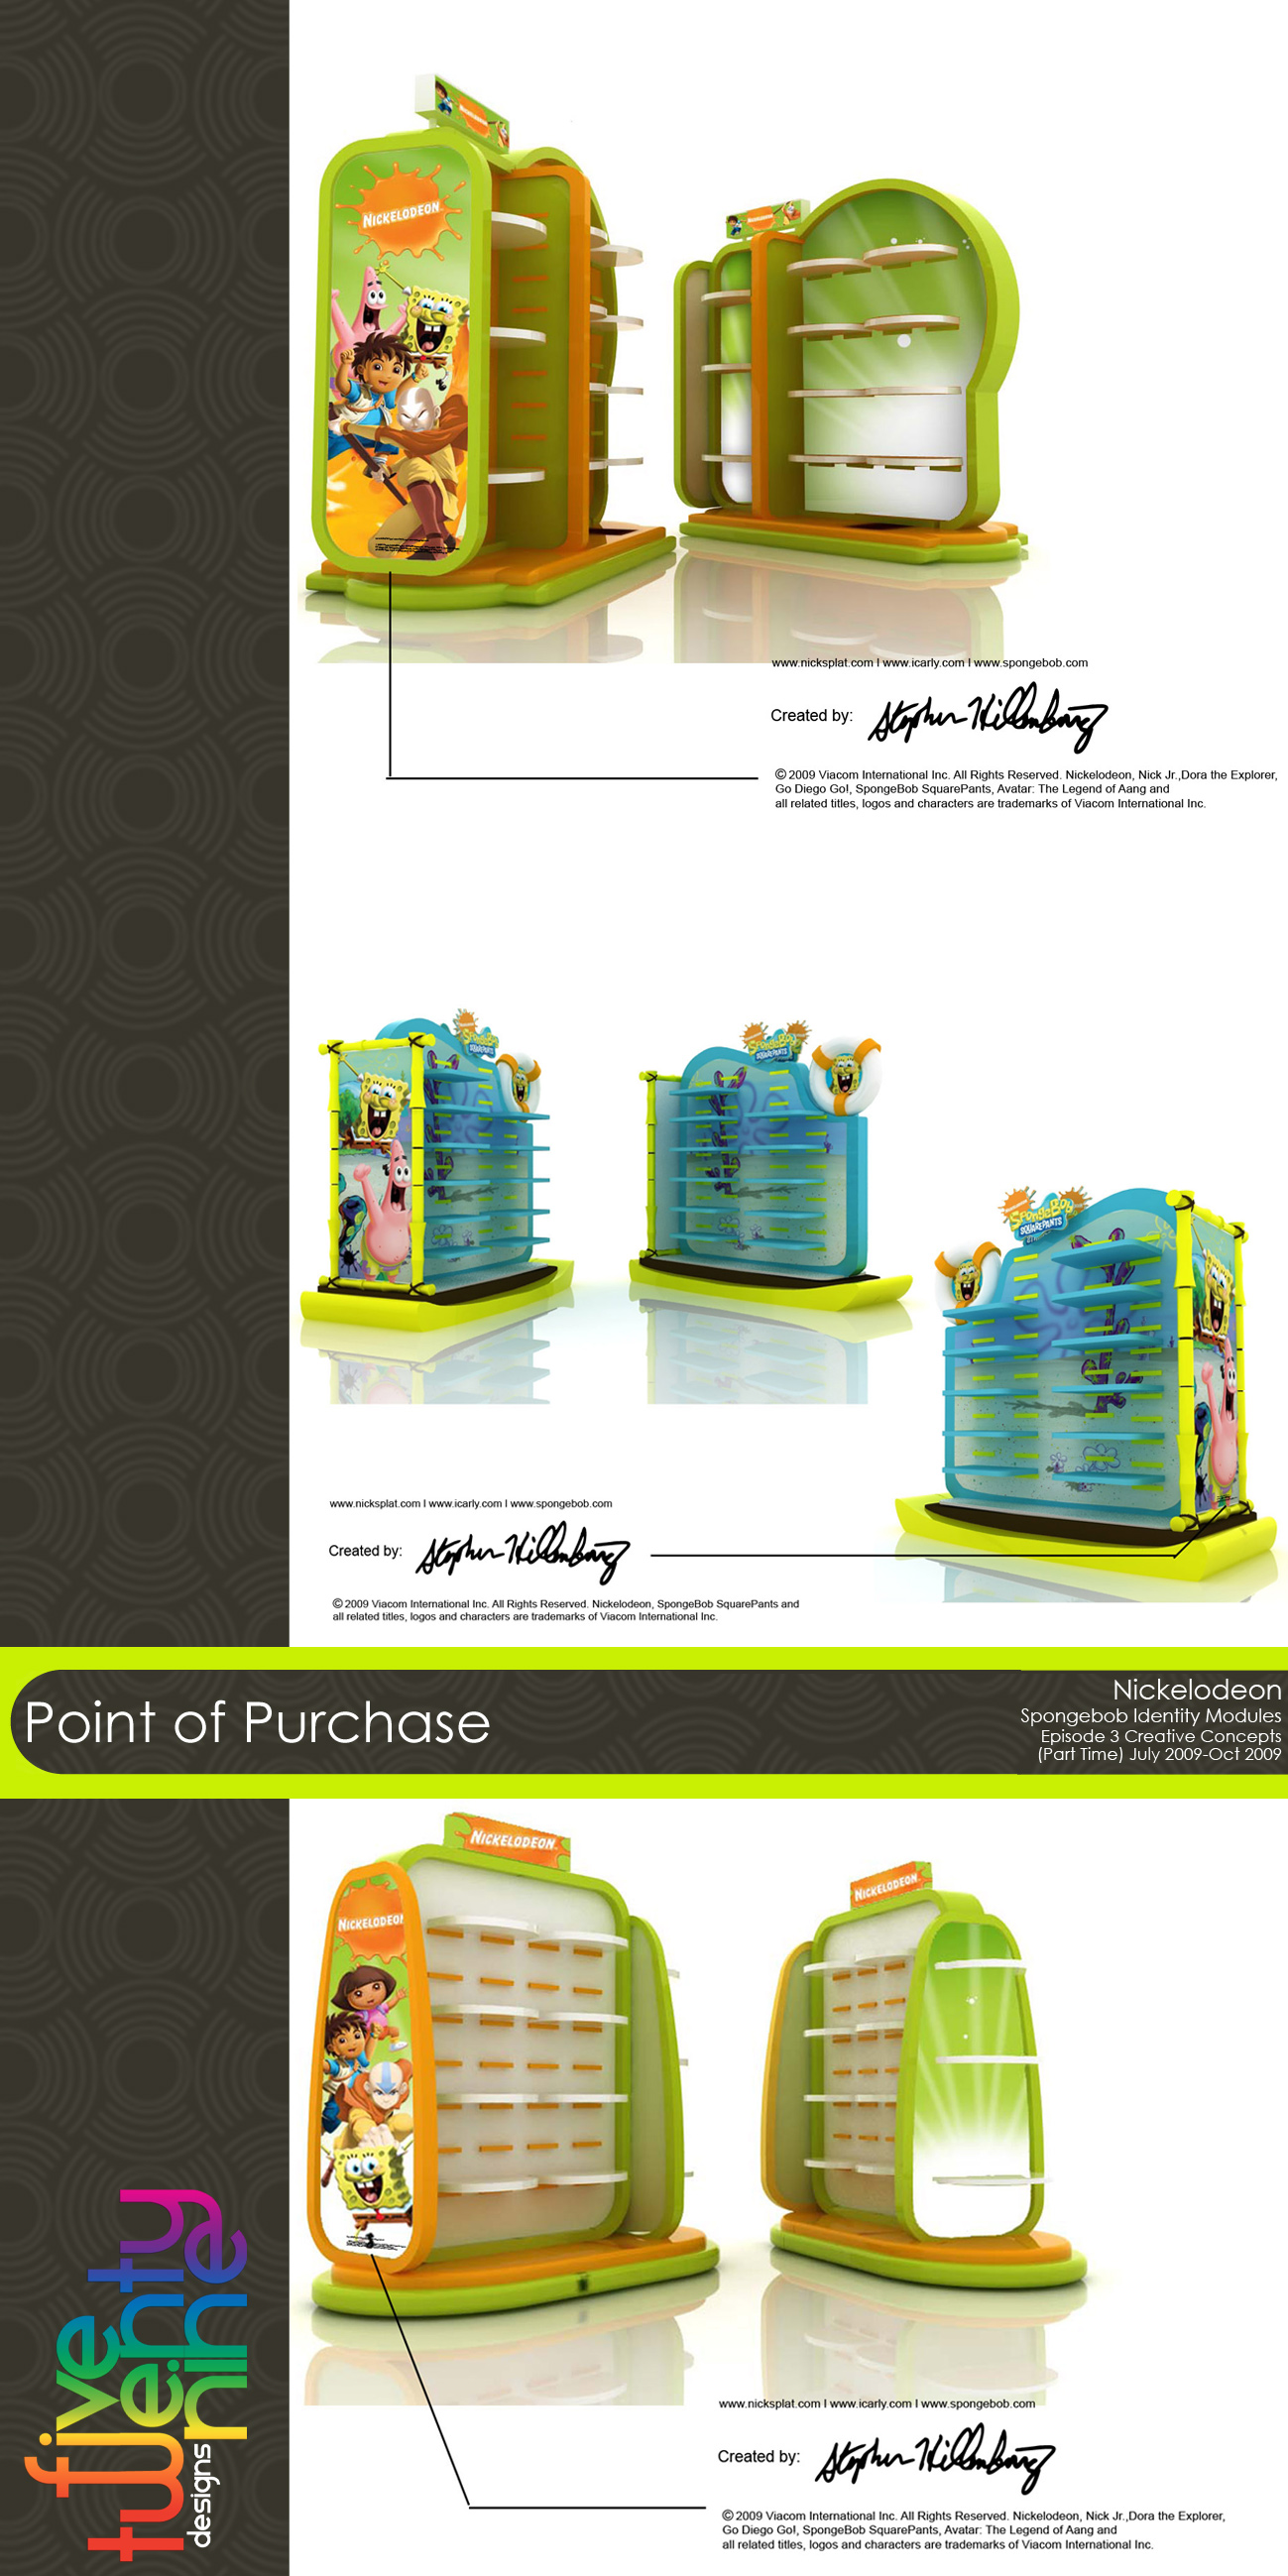 point of purchase by rene perlada at coroflot com